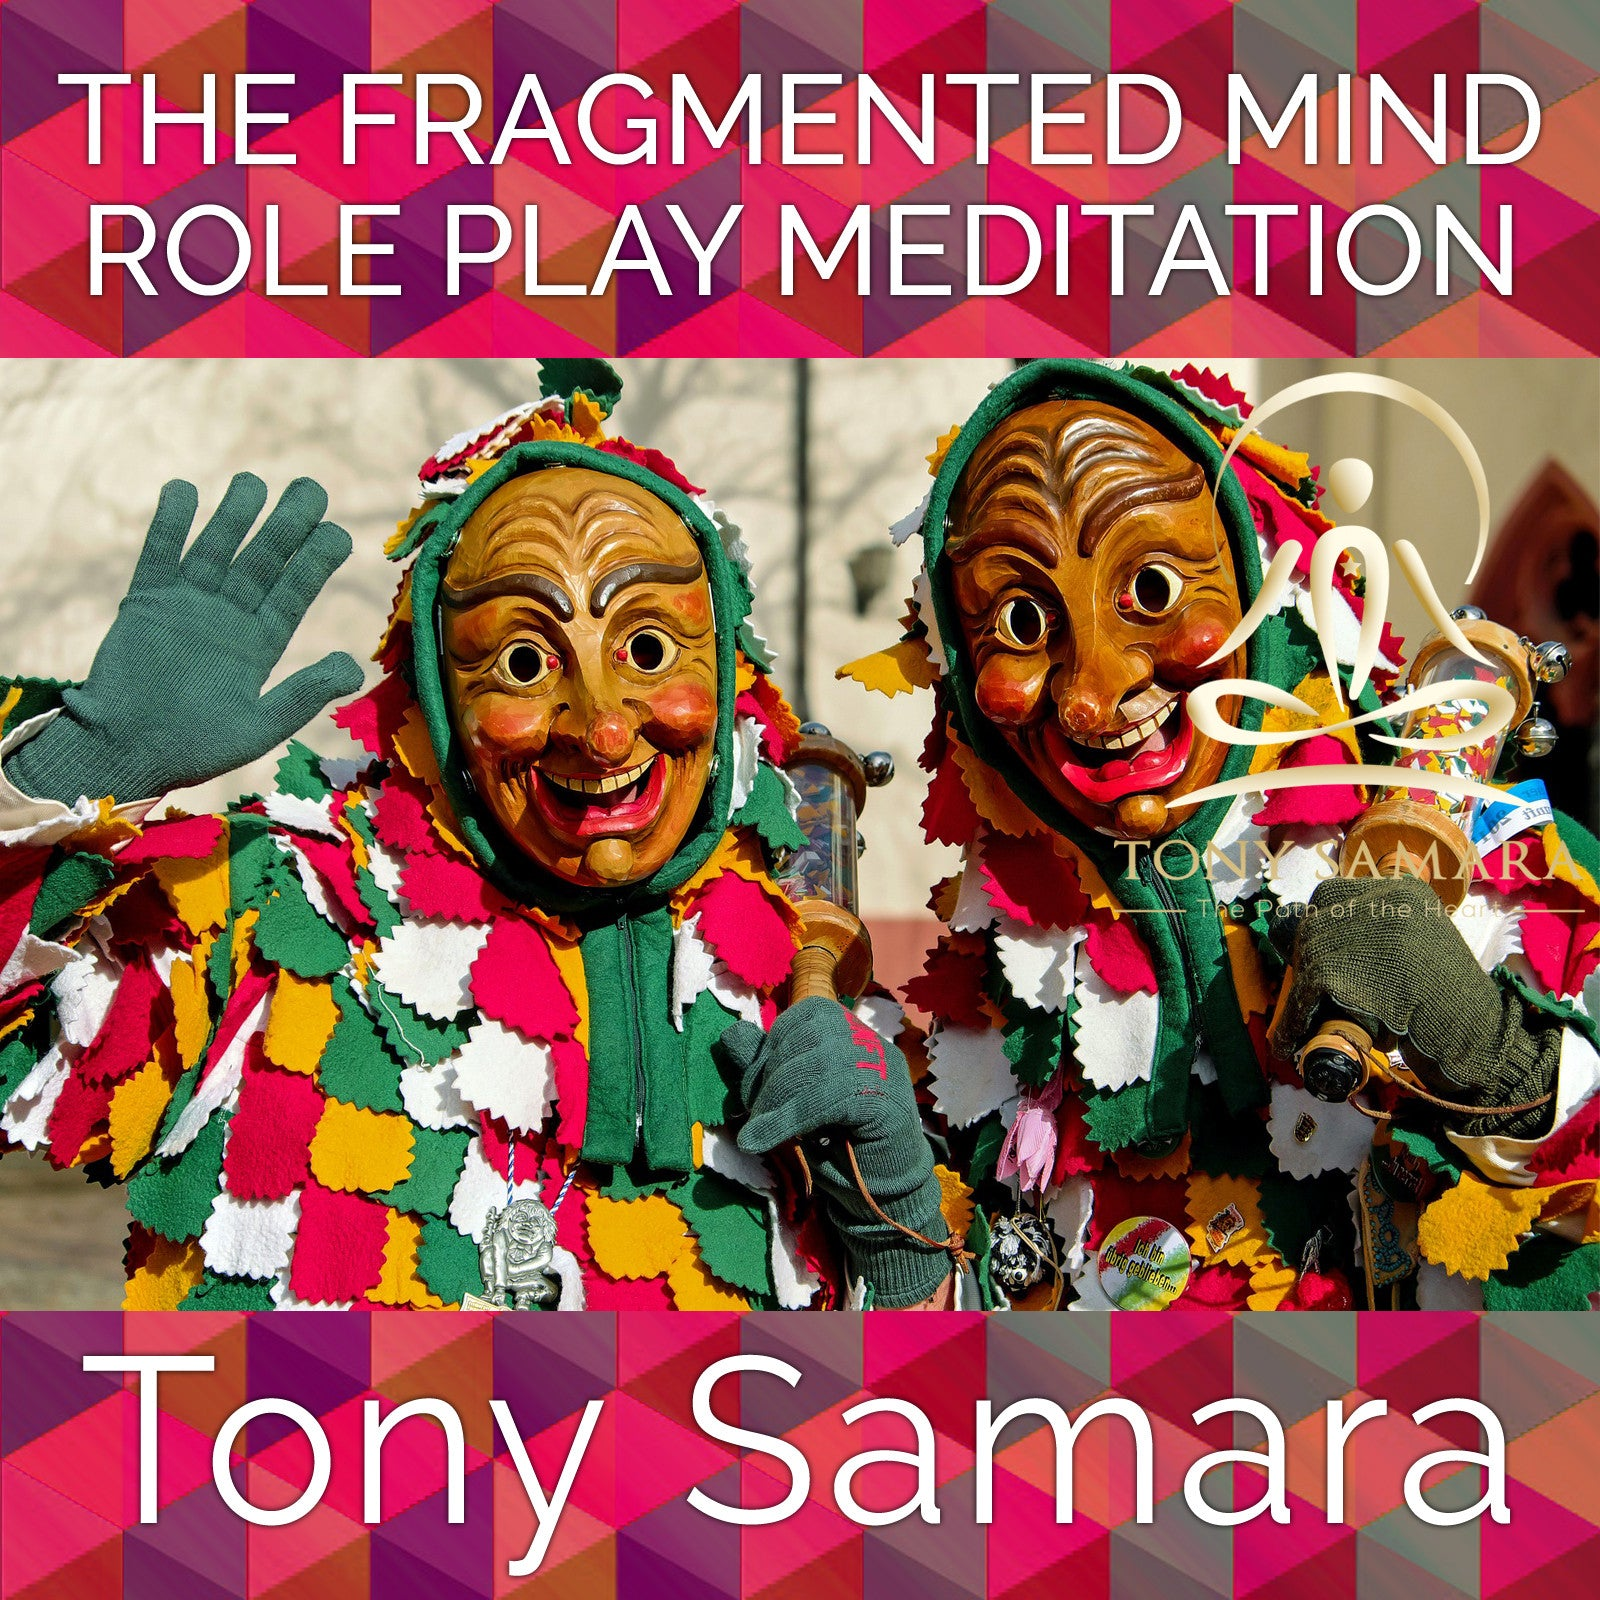 The Fragmented Mind Role Play Meditation (MP3 Audio Download) - Tony Samara Meditation